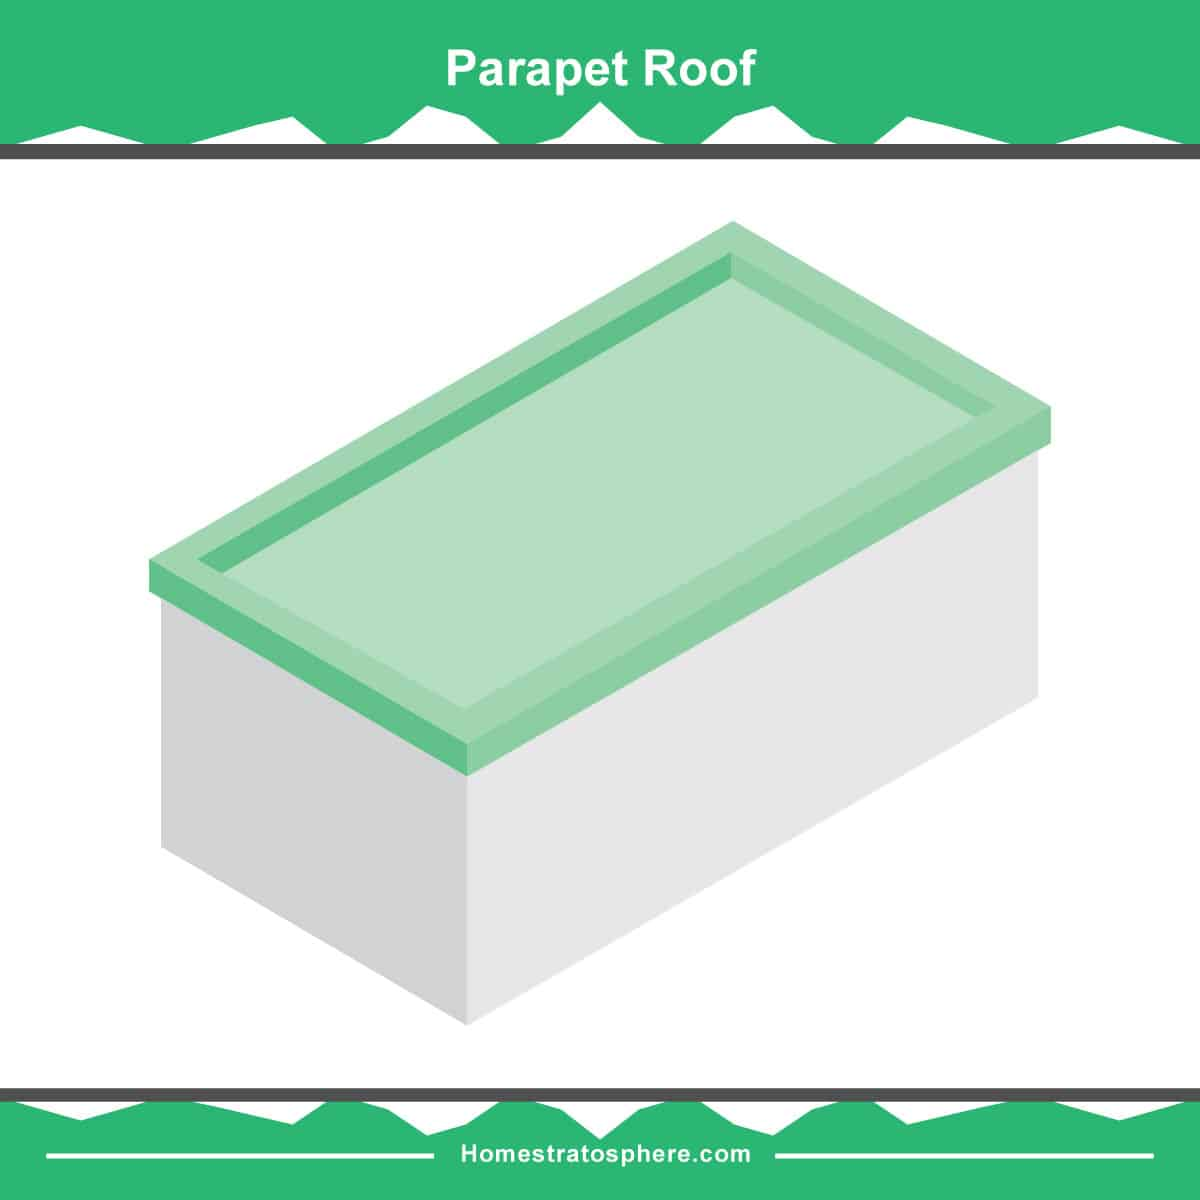 Parapet roof diagram